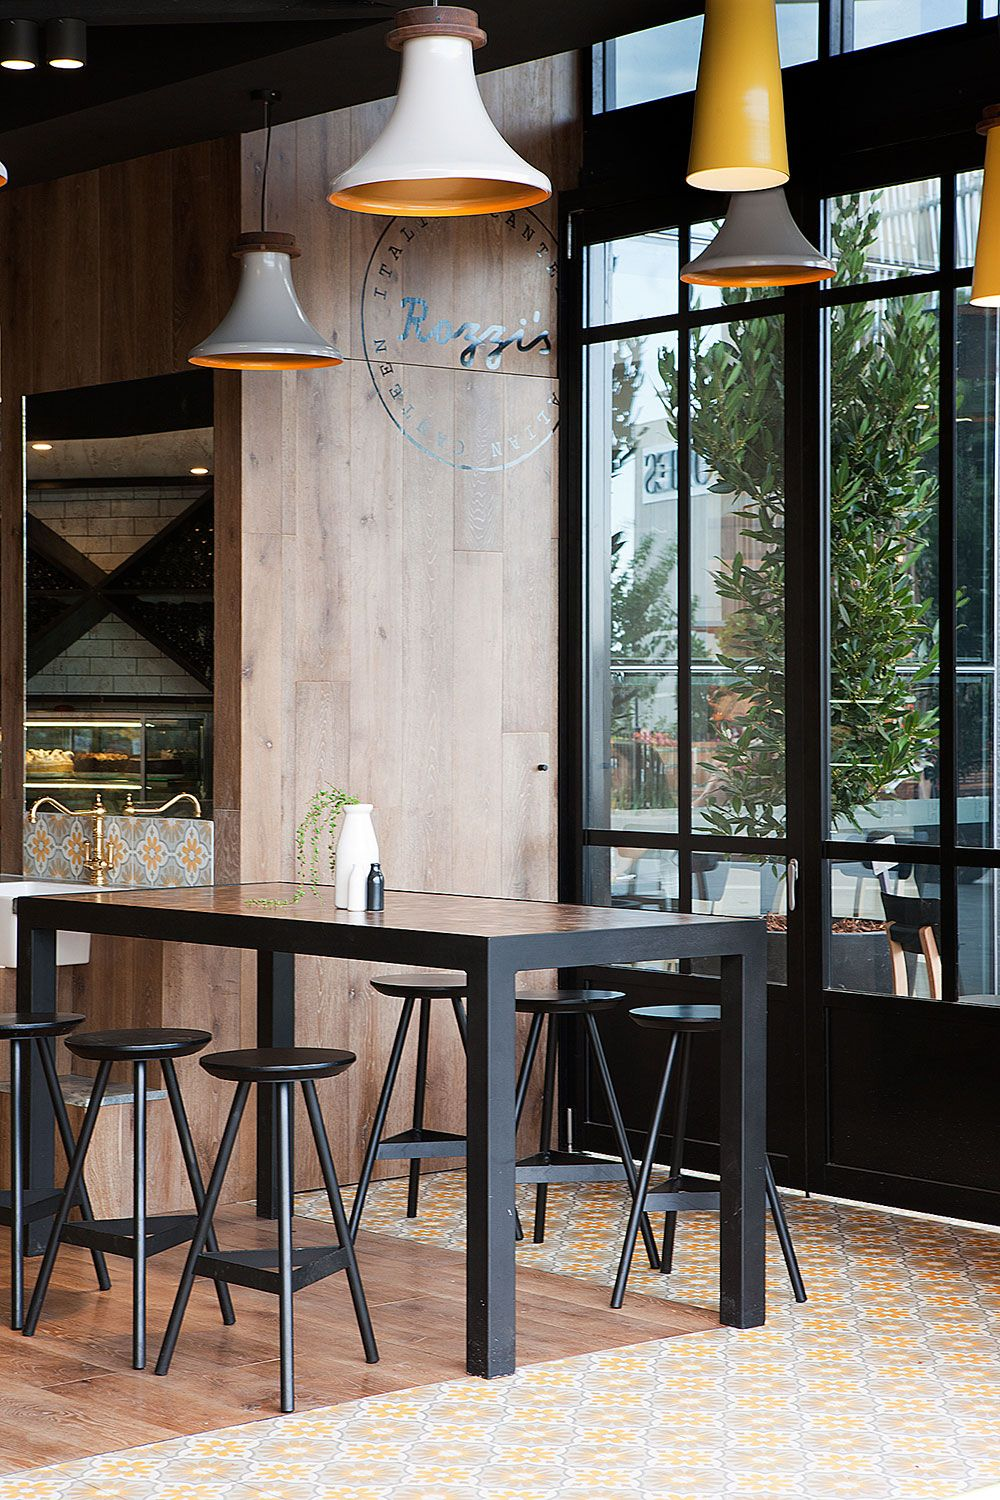 Amazing Restaurant Space. Love the tile details and the inside/outside quality of the space. Rozzi's Italian Canteen by Mim Design, Melbourne, Austrailia.